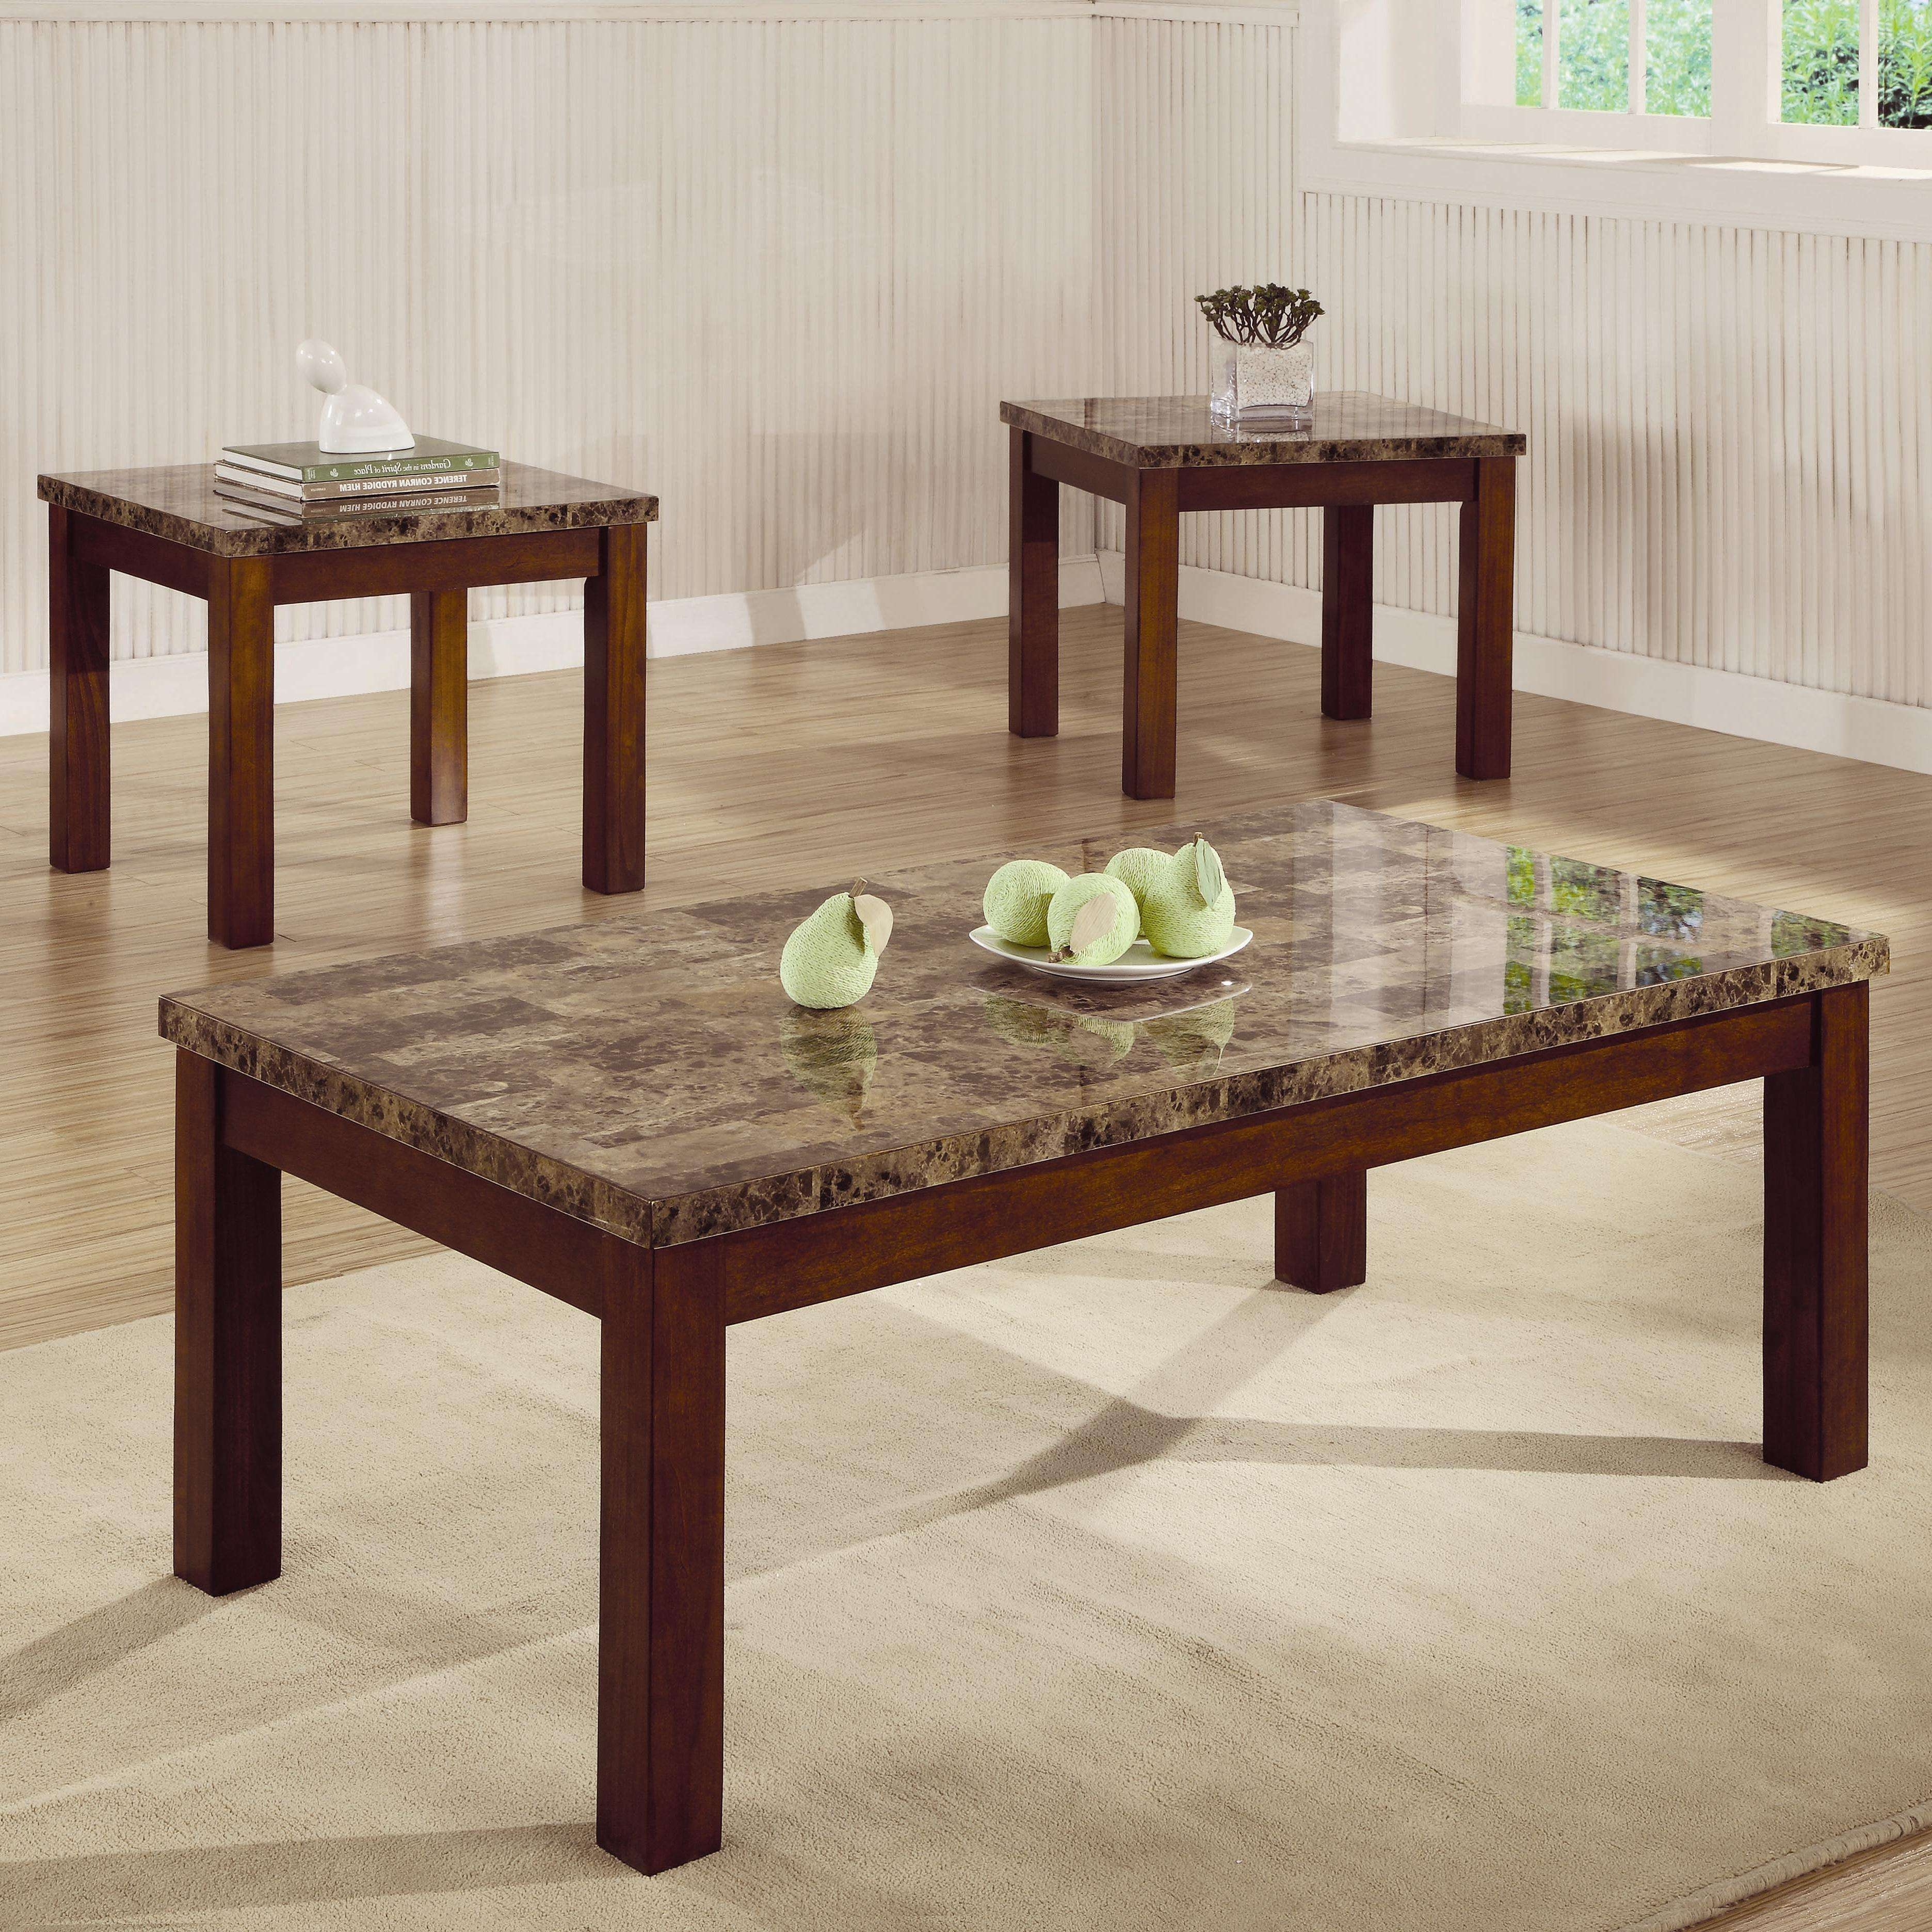 Current Rustic Looking Coffee Tables In Coffee Table : Wonderful Rustic Coffee Table Square Coffee Table (View 10 of 20)